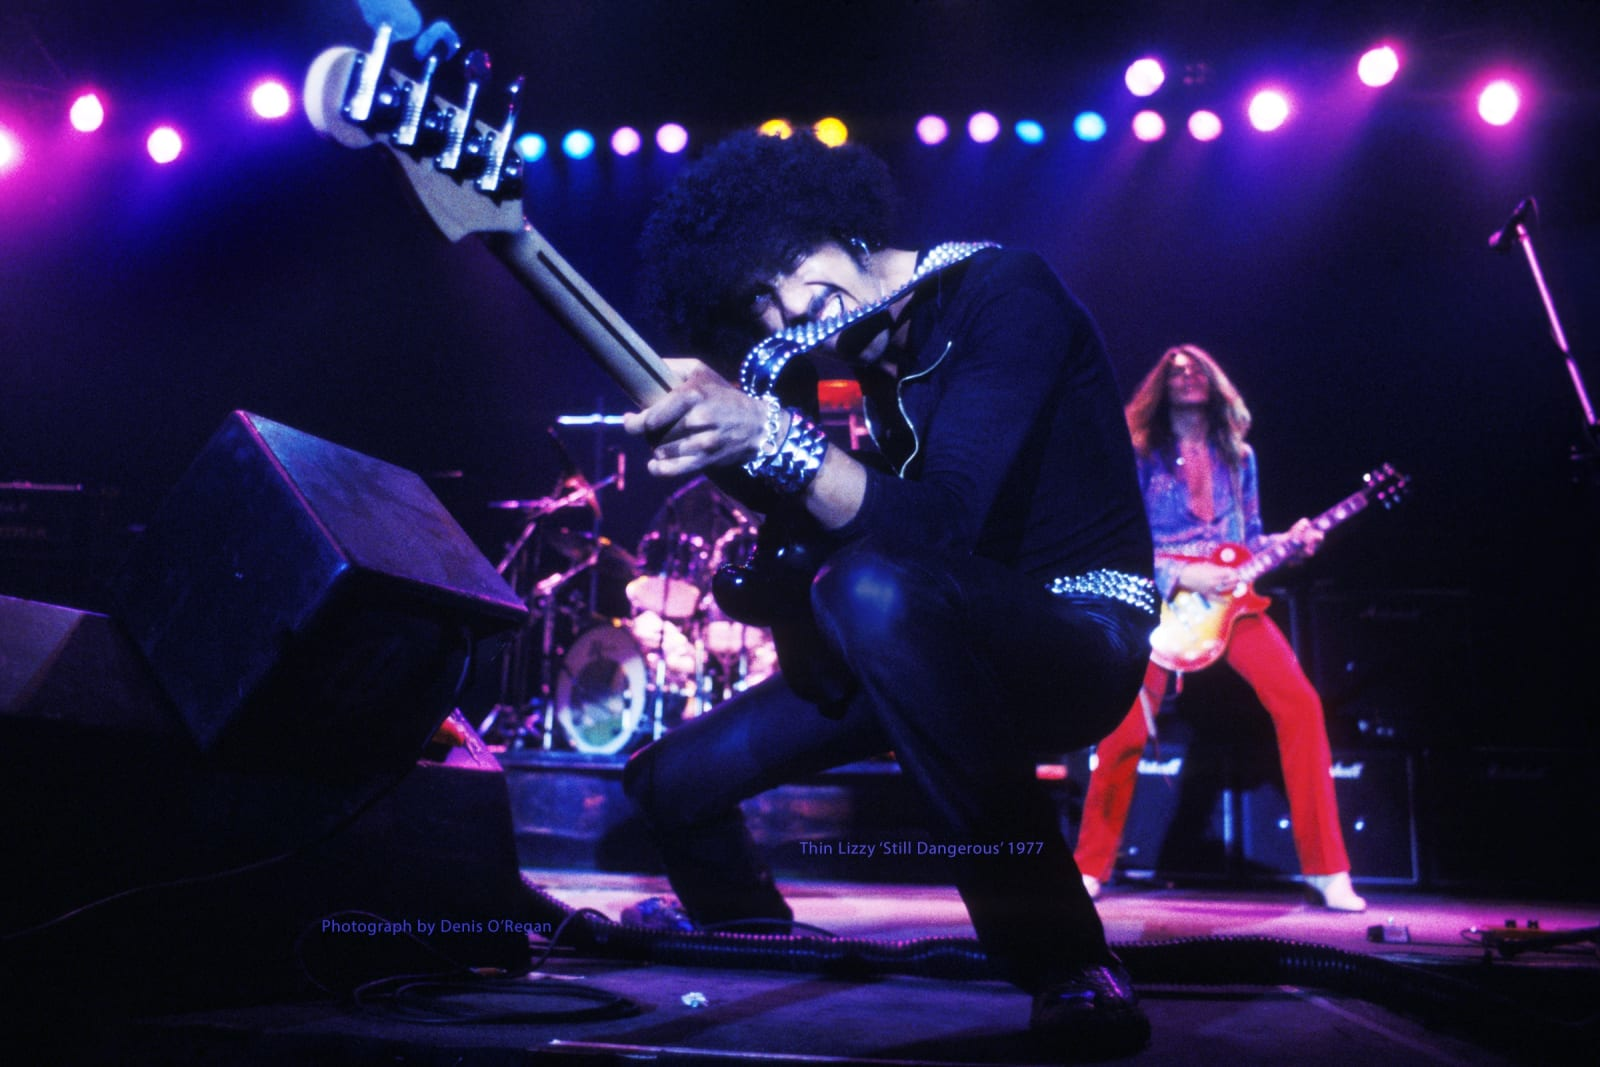 THIN LIZZY, Still Dangerous, 1977